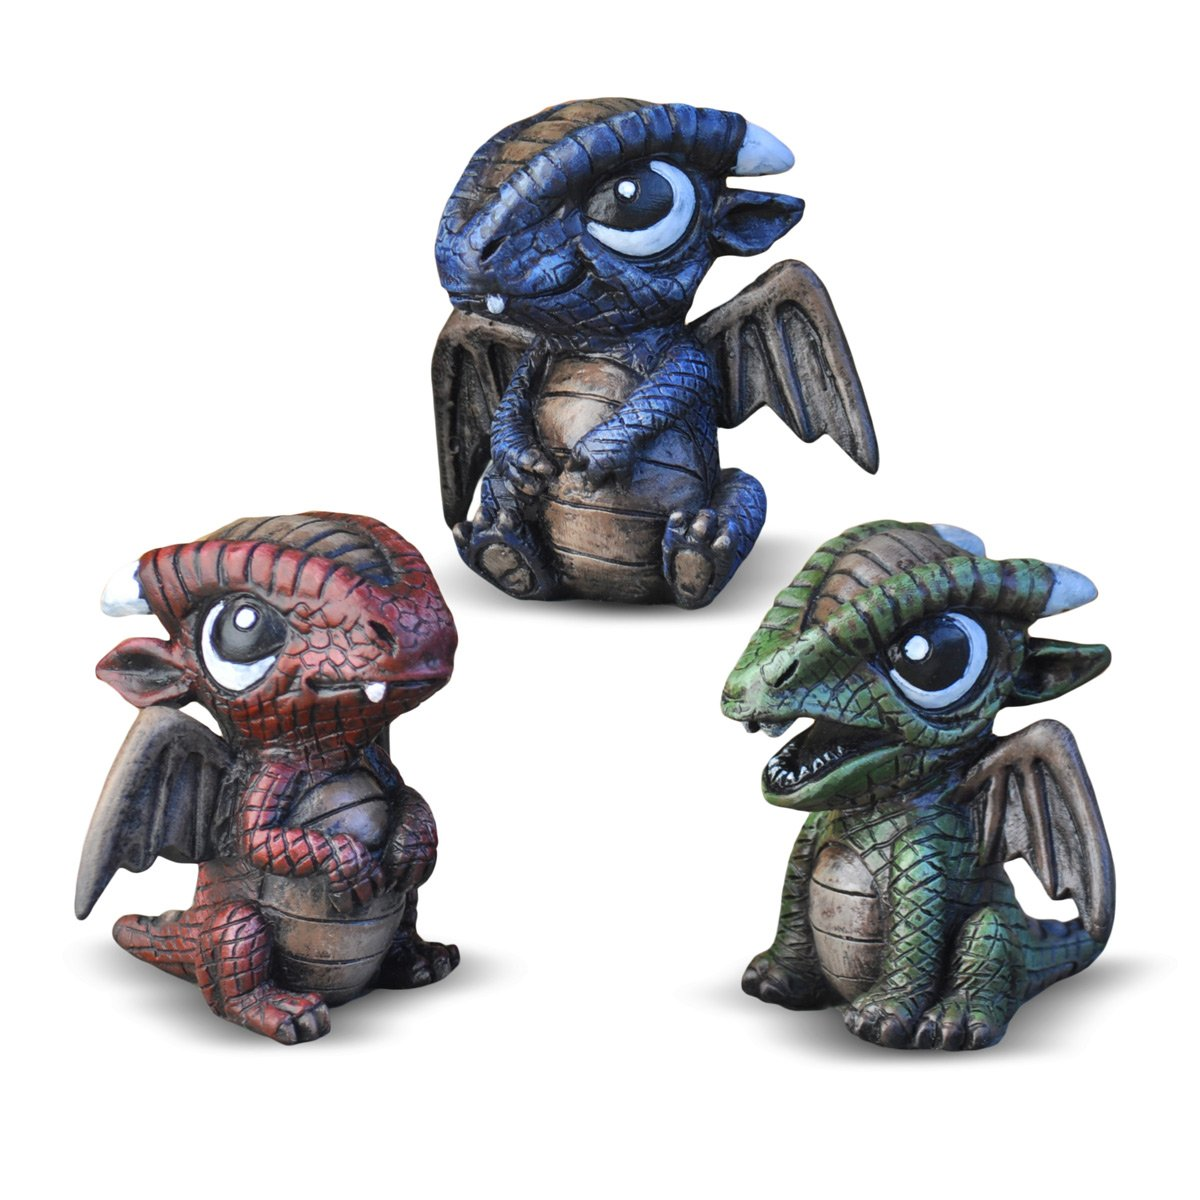 Georgetown Home & Garden Miniature Baby Dragons Assorted Garden Decor, Set of 3